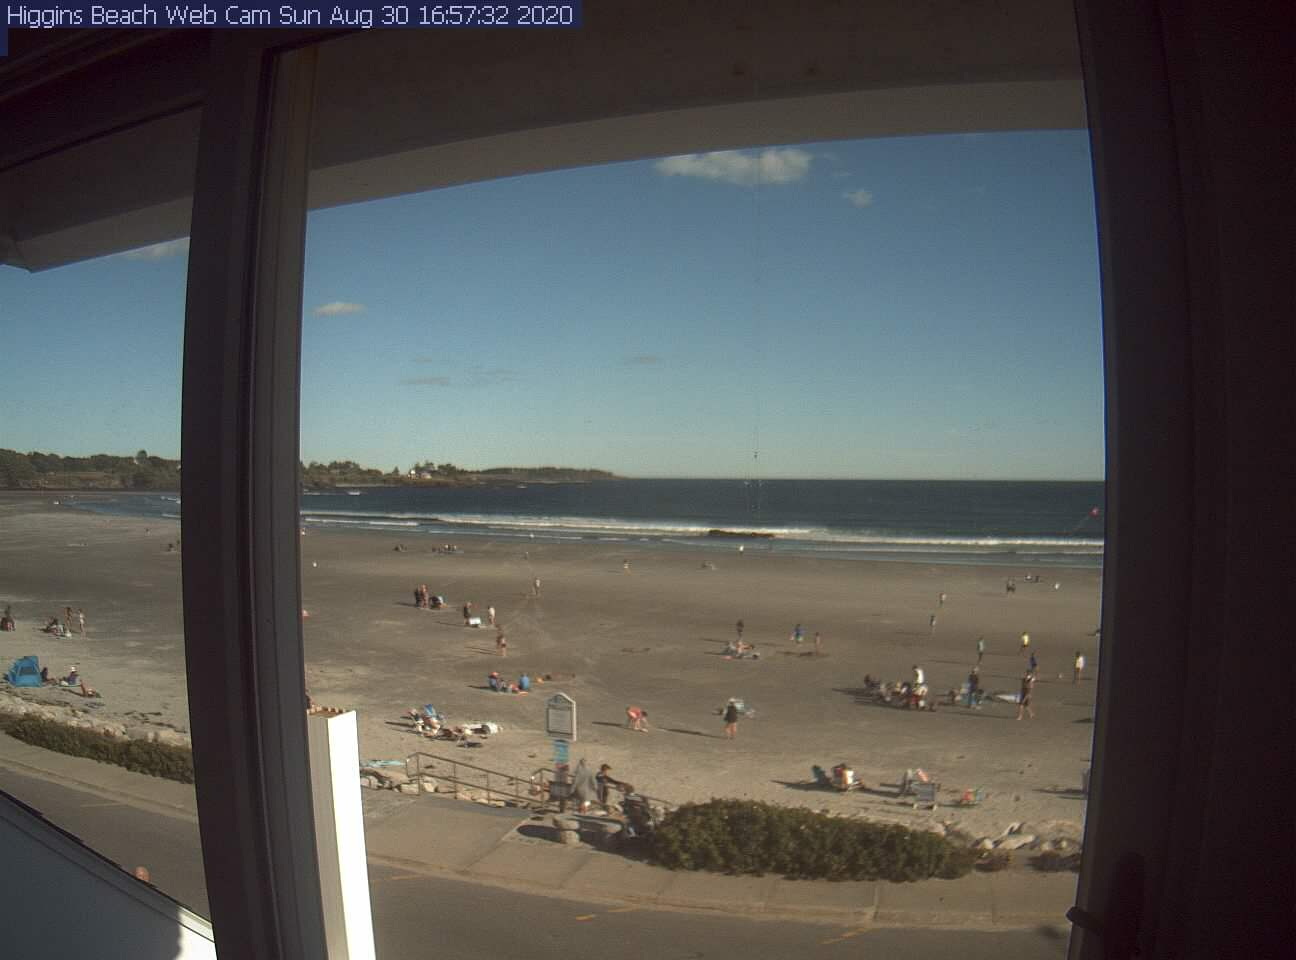 Higgins Beach Webcam